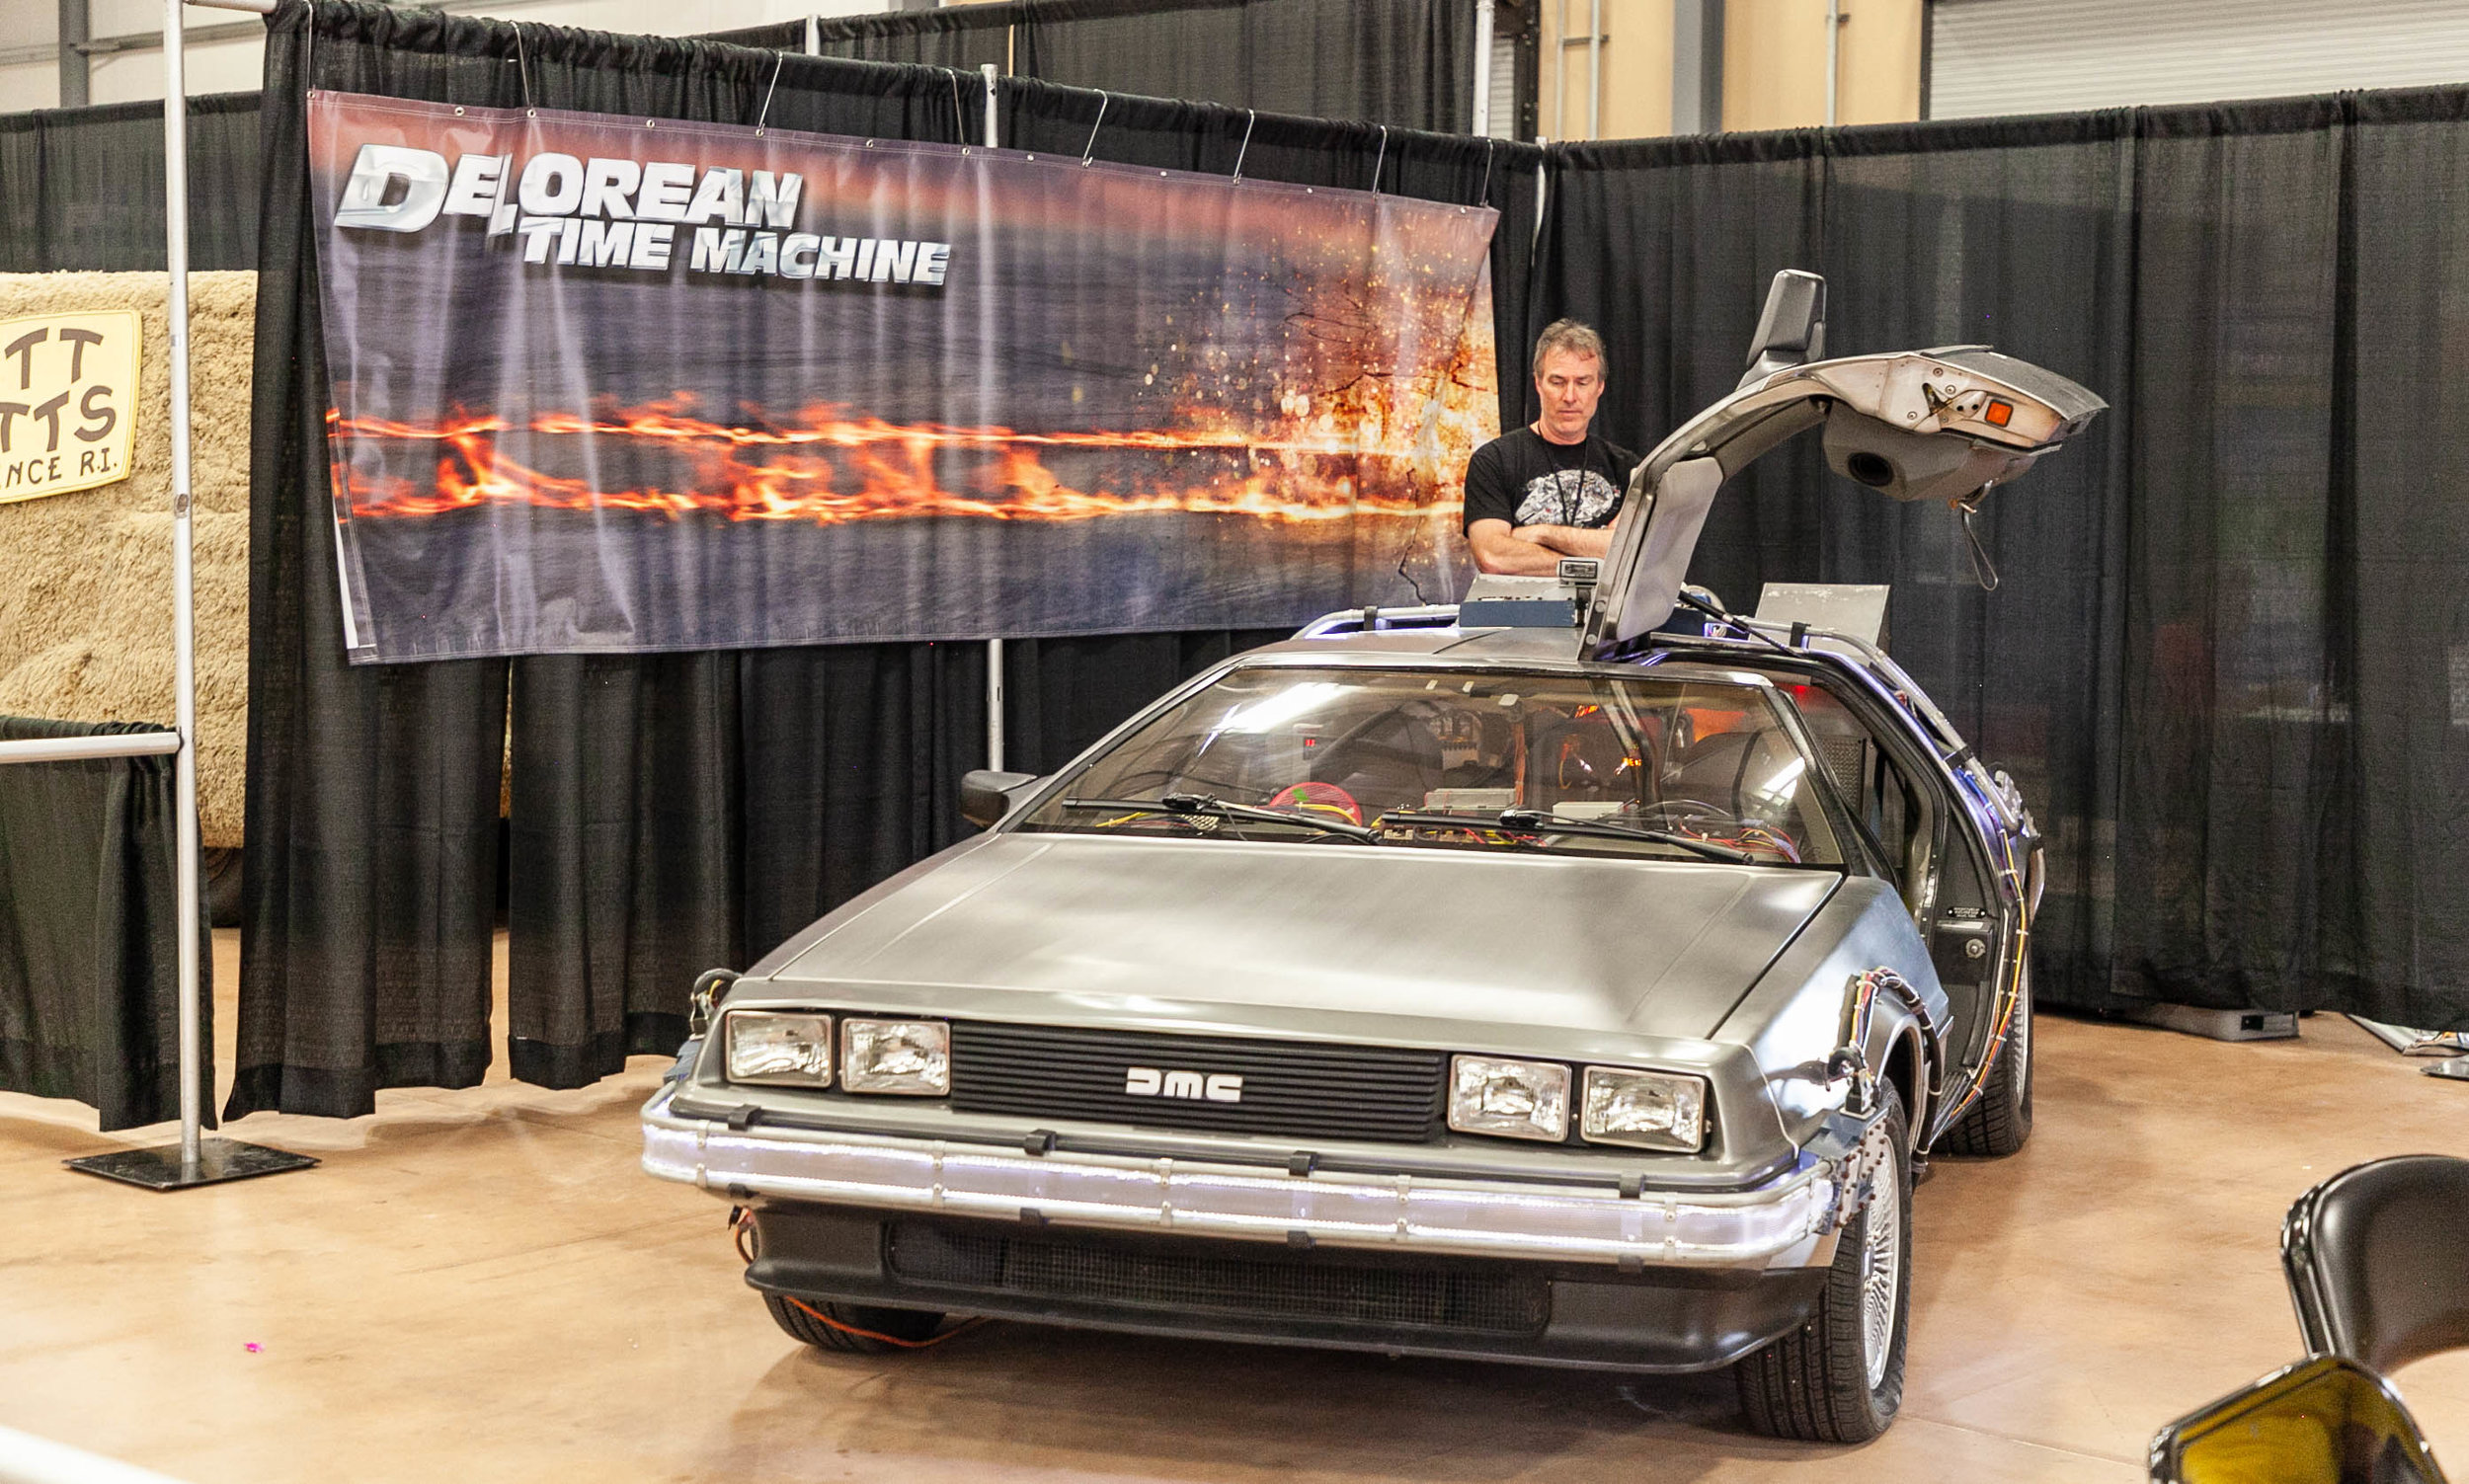 The Back to the Future DeLorean sits on display at the Fan Fest. (Photo by Luis Vazquez.)